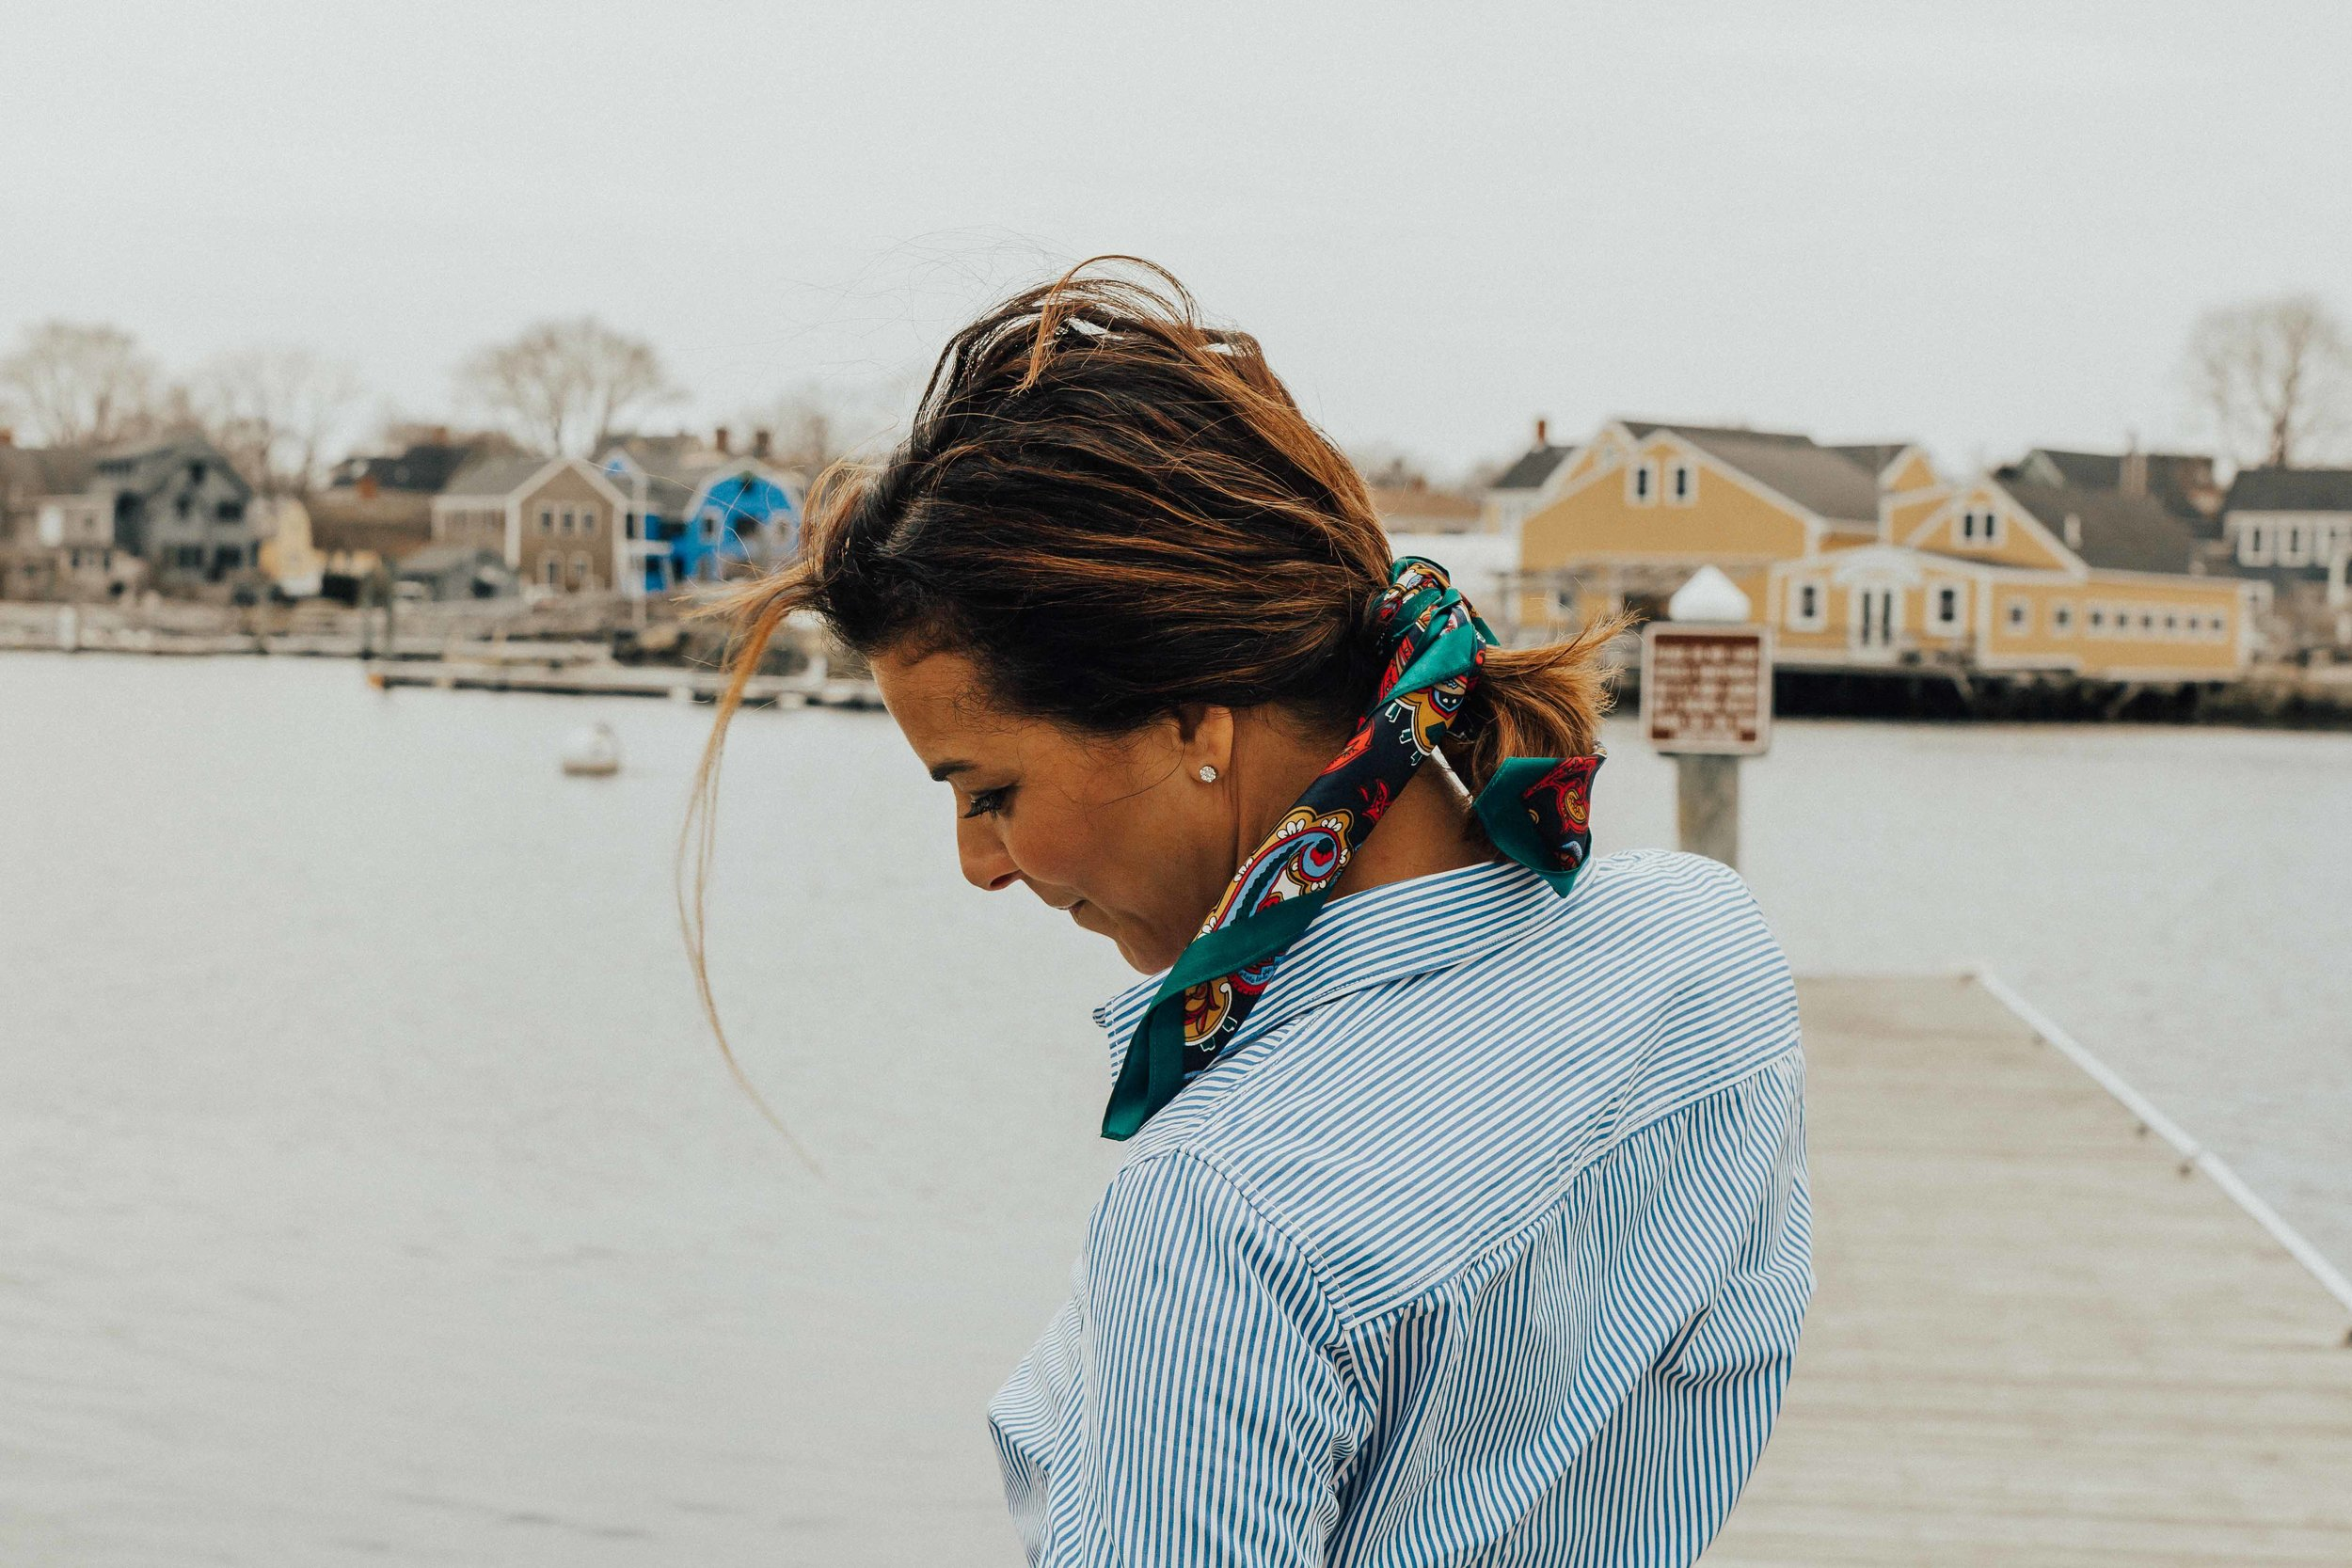 How to Style a Scarf – Scarf Outfits – Scarf Hair Tie – Scarf Choker Outfits – Coastal Outfit Ideas- Fashion for Women - #scarfoutfitss #heartandseam  www.heartandseam.com